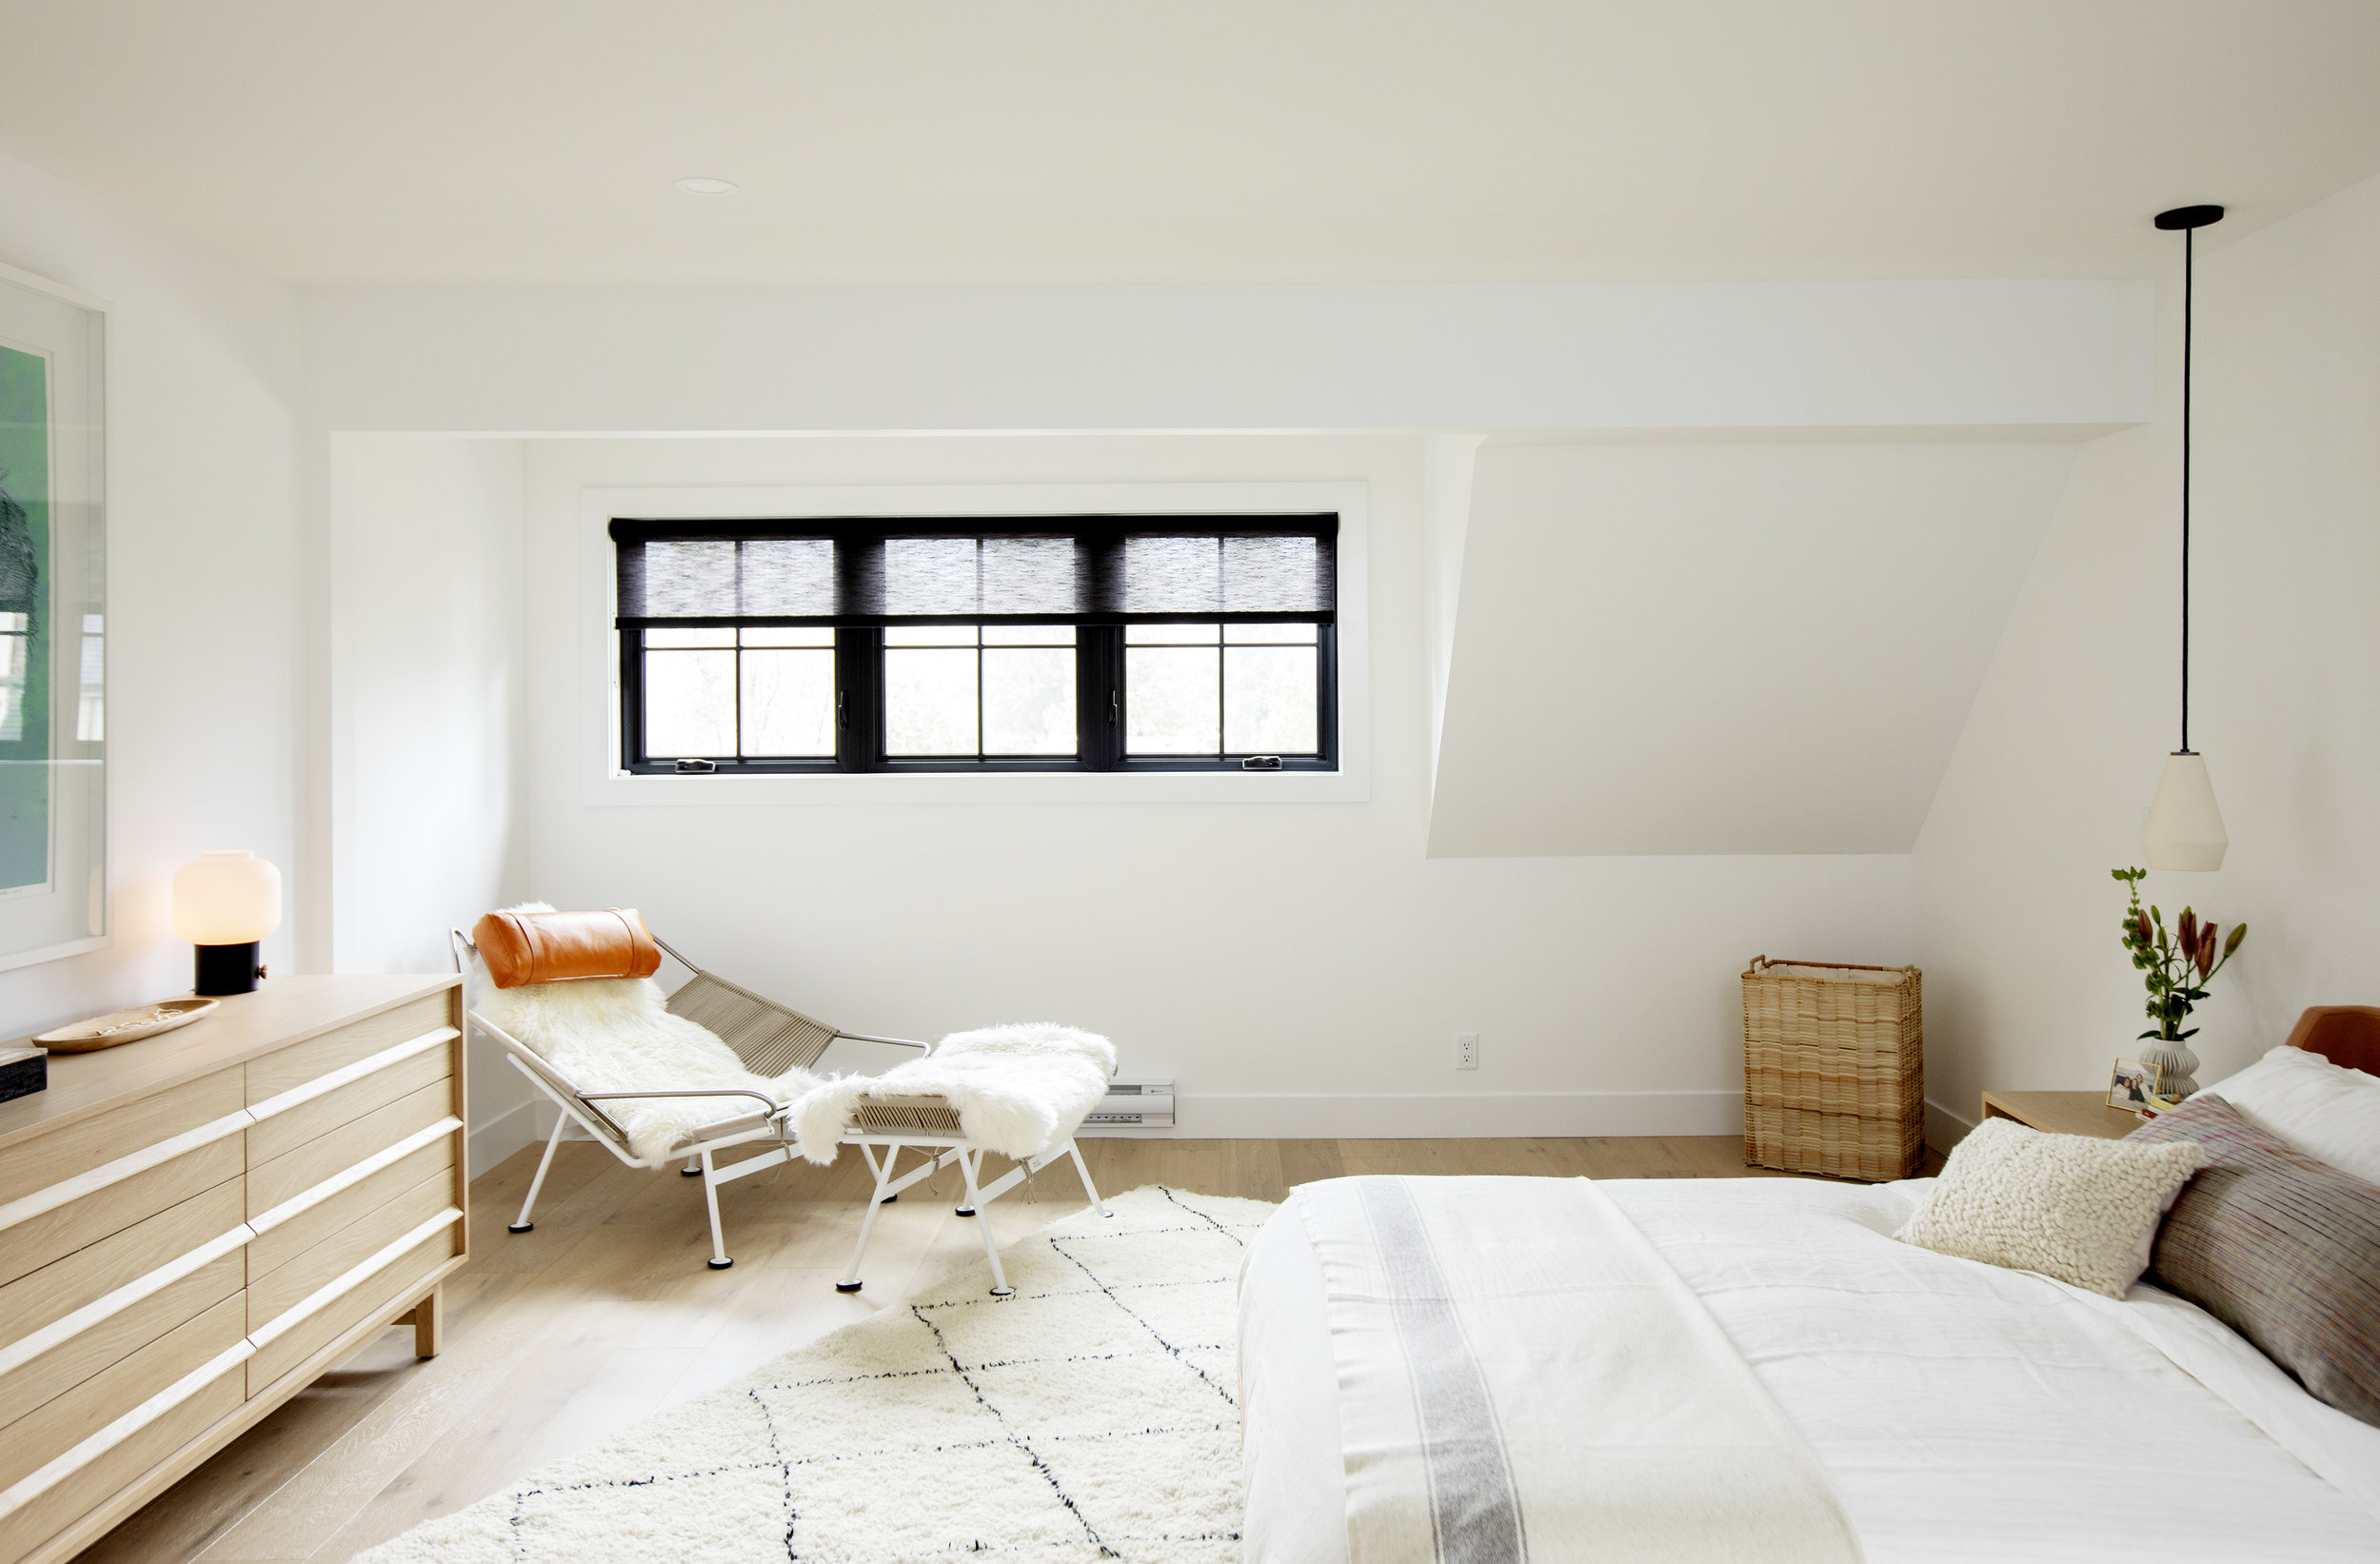 The bedroom at Alderfield Place is bright and cheerful. A lounge chair sits in the corner in front of the low bed.